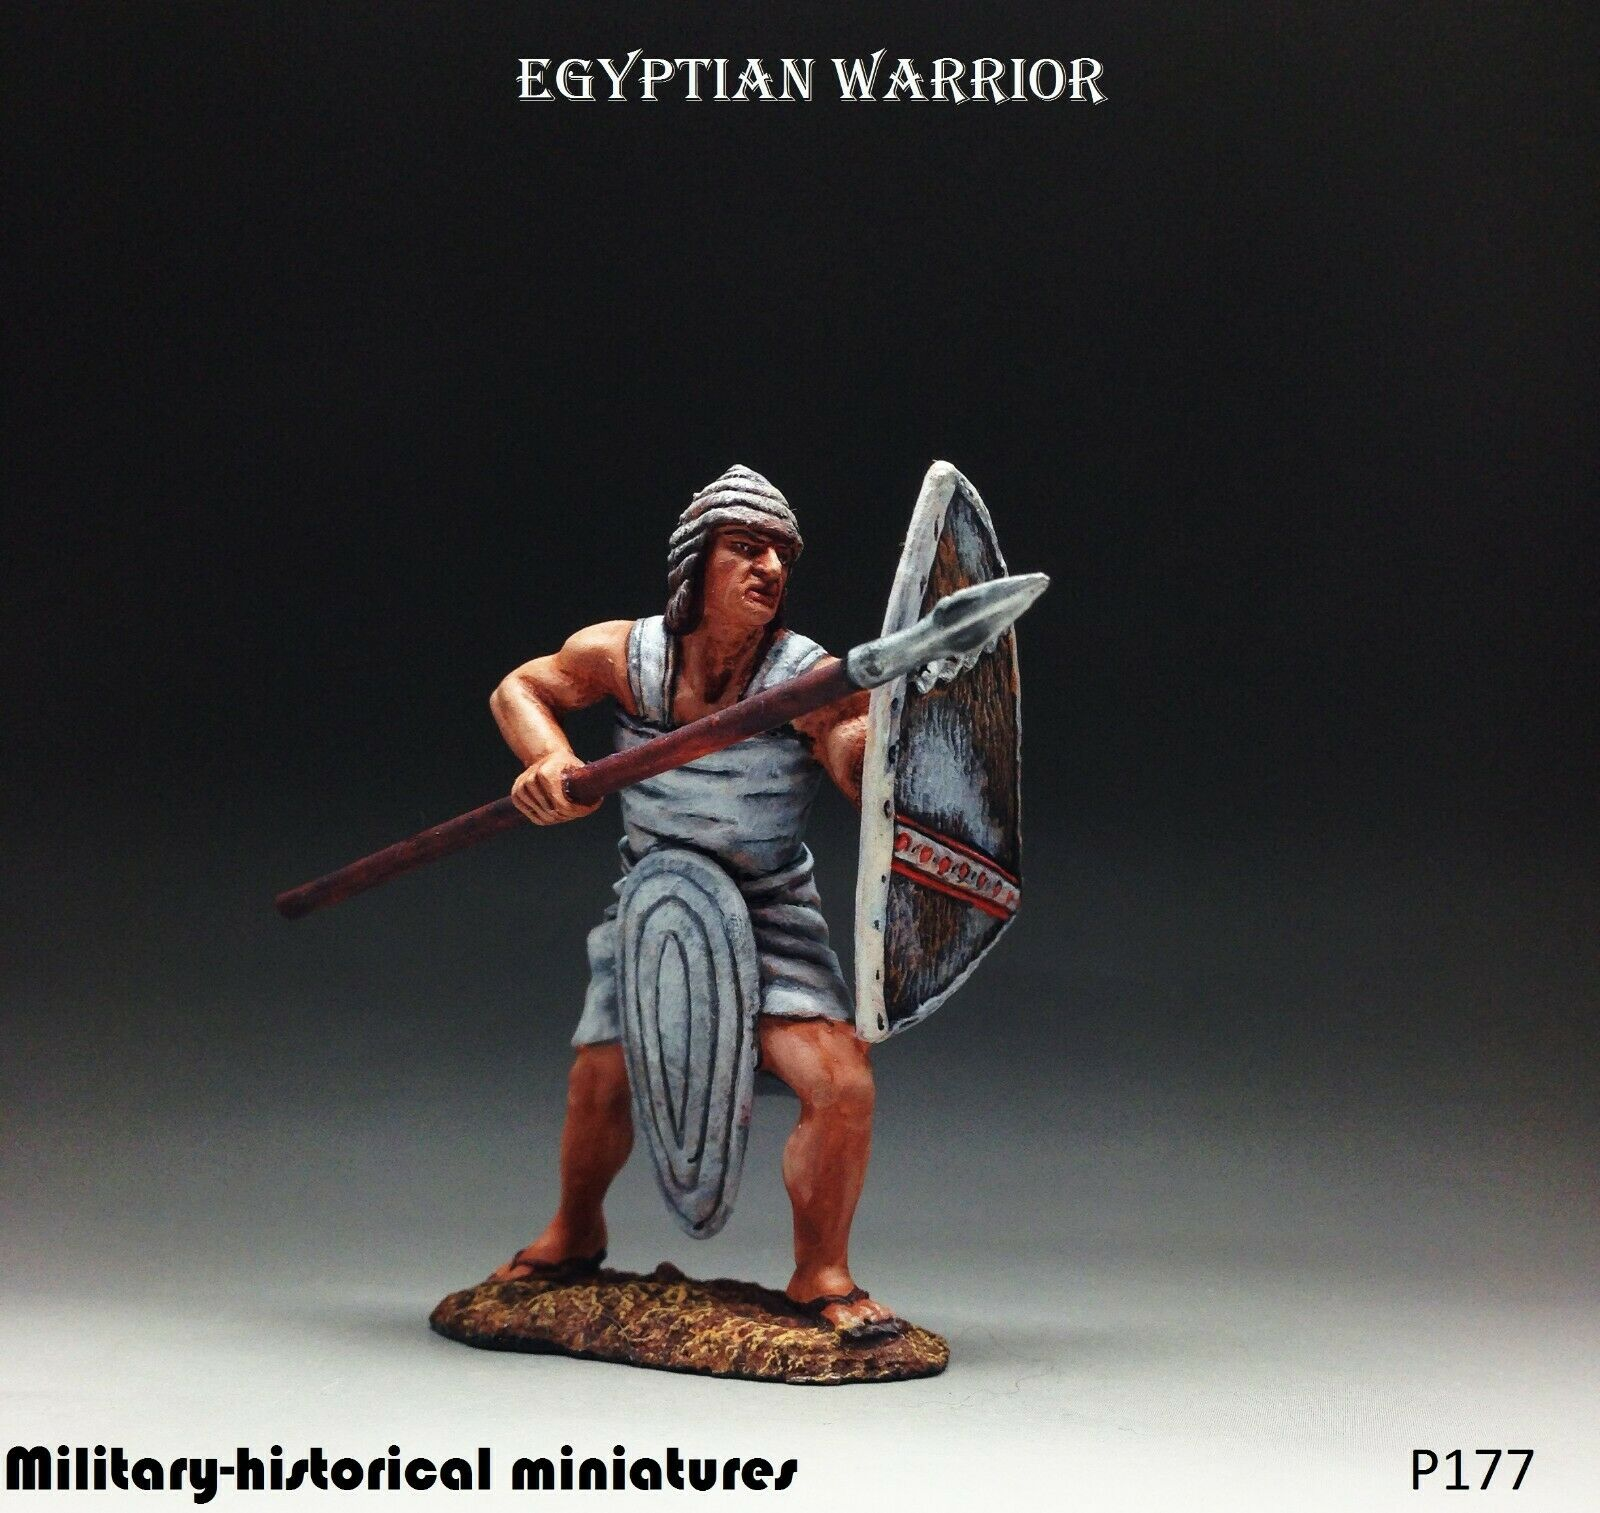 Egyptian warrior Tin toy soldier 54 mm figurine metal sculpture HAND PAINTED